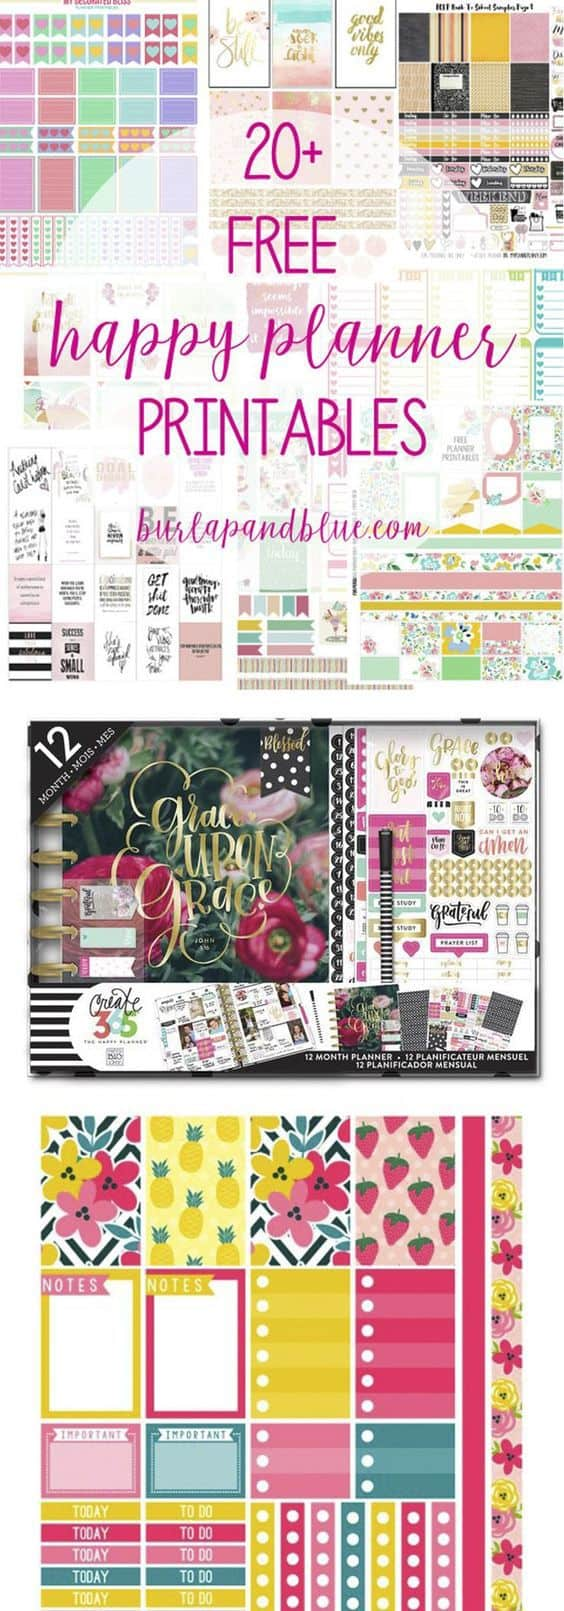 photograph regarding Happy Planner Printable Calendar Pages called Weekly Planner Printables Cost-free for Your Delighted Planner